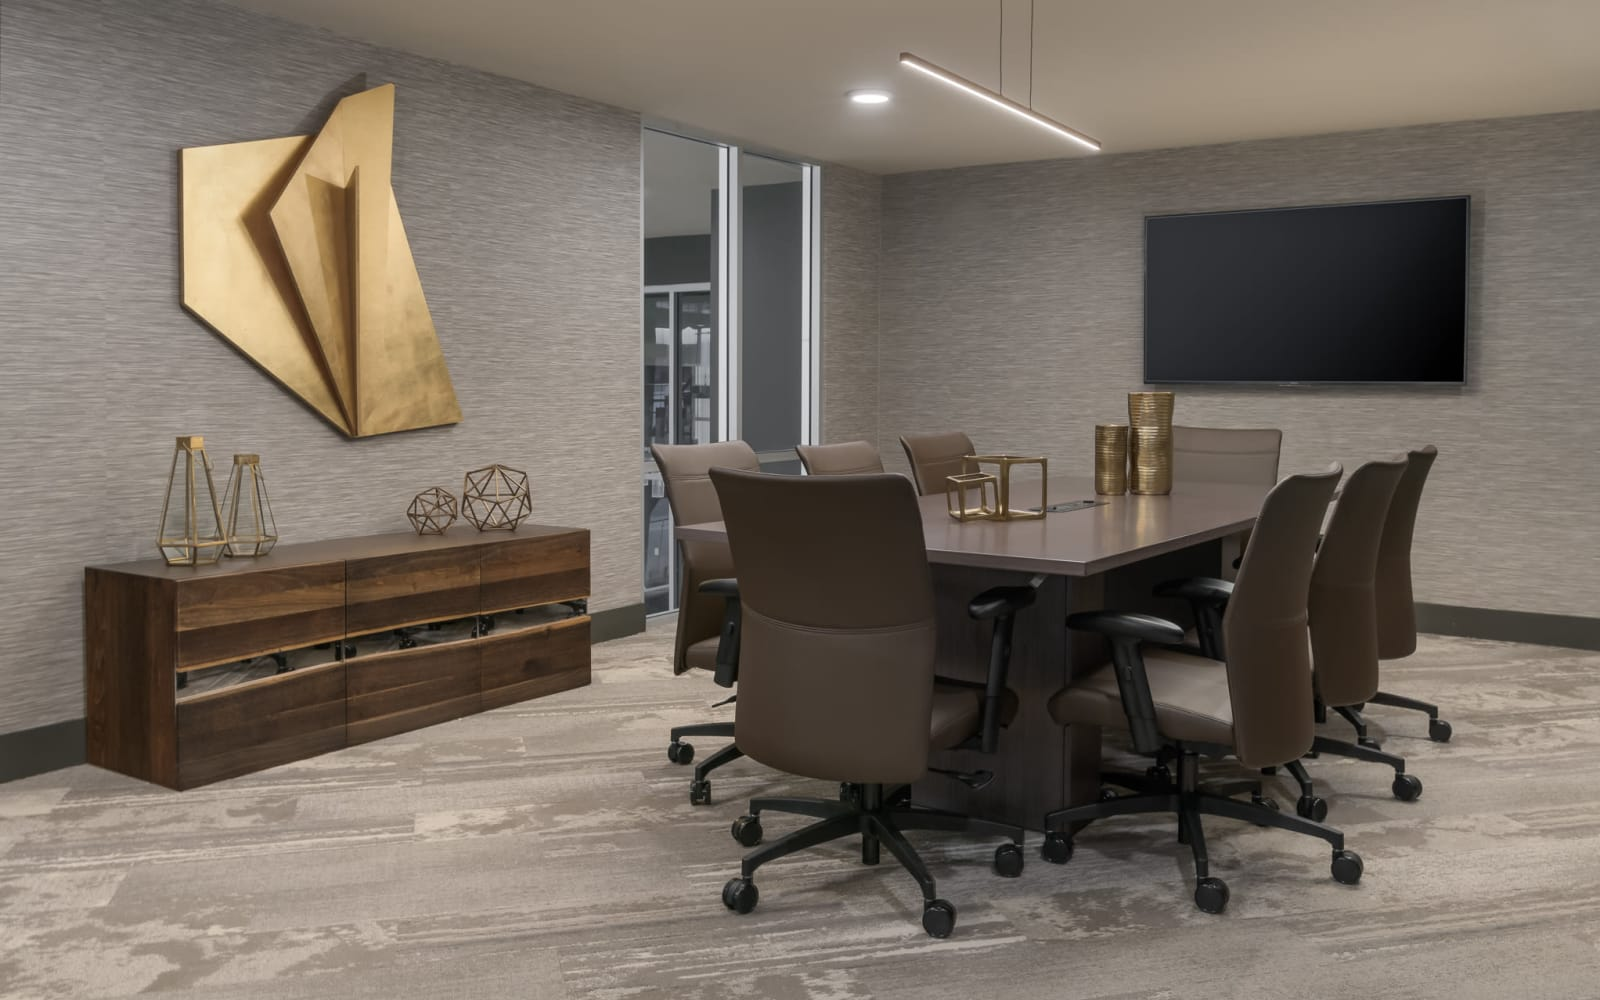 District at Scottsdale Conference Room